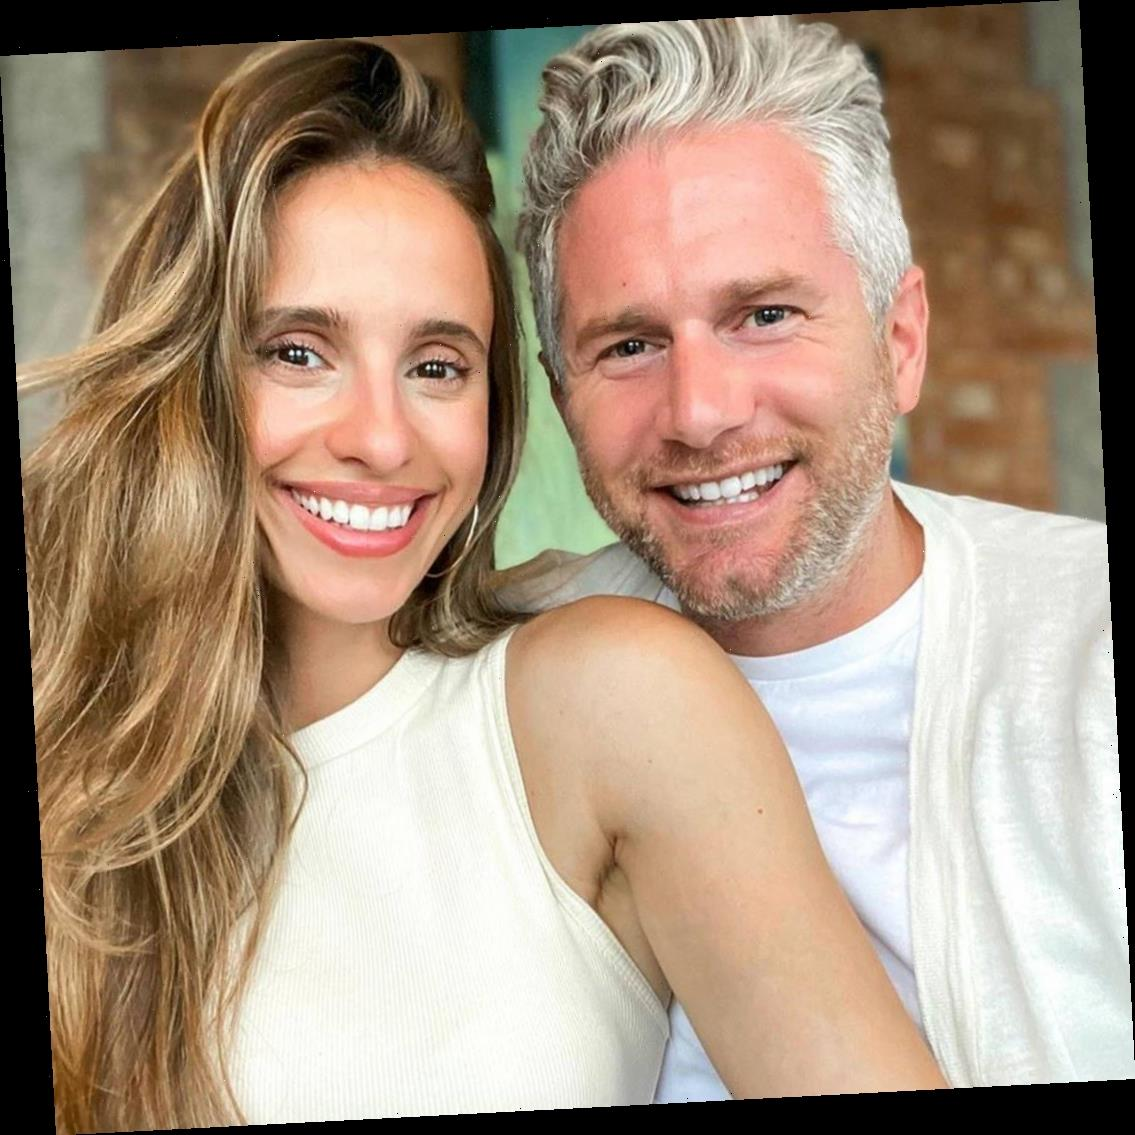 The Bachelor's Vanessa Grimaldi Is Engaged to Joshua Wolfe